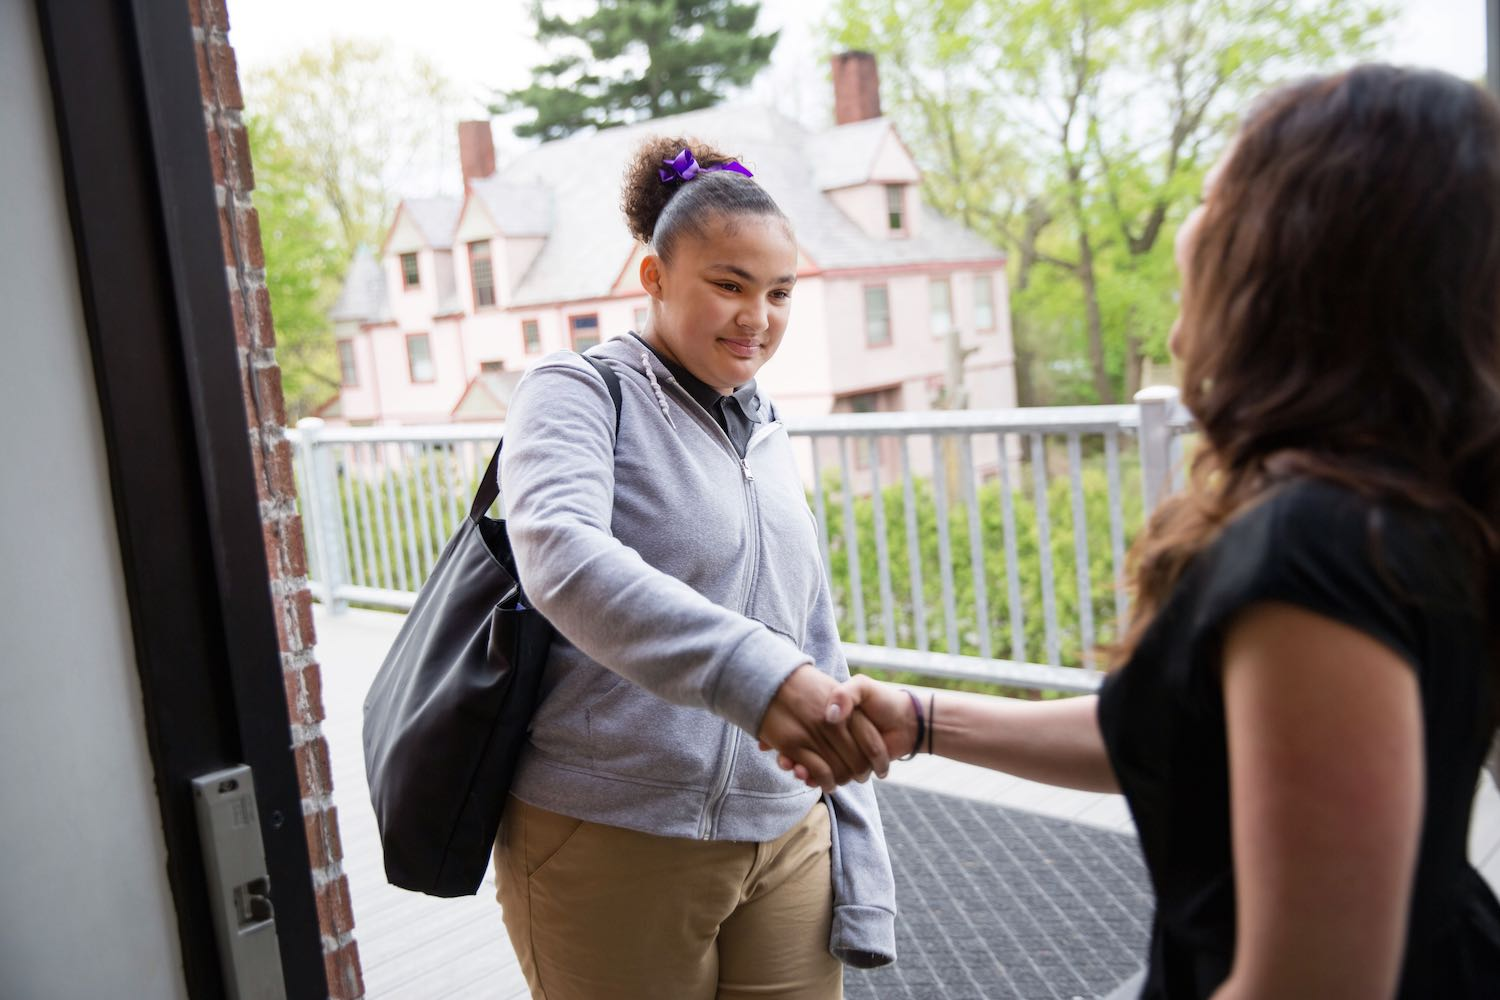 7:20  –  ARRIVAL & MORNING WORK  Scholars are greeted at the door with a handshake and a uniform inspection before eating breakfast. During this time, scholars will also complete morning work to get their brains warmed up for the day to come!